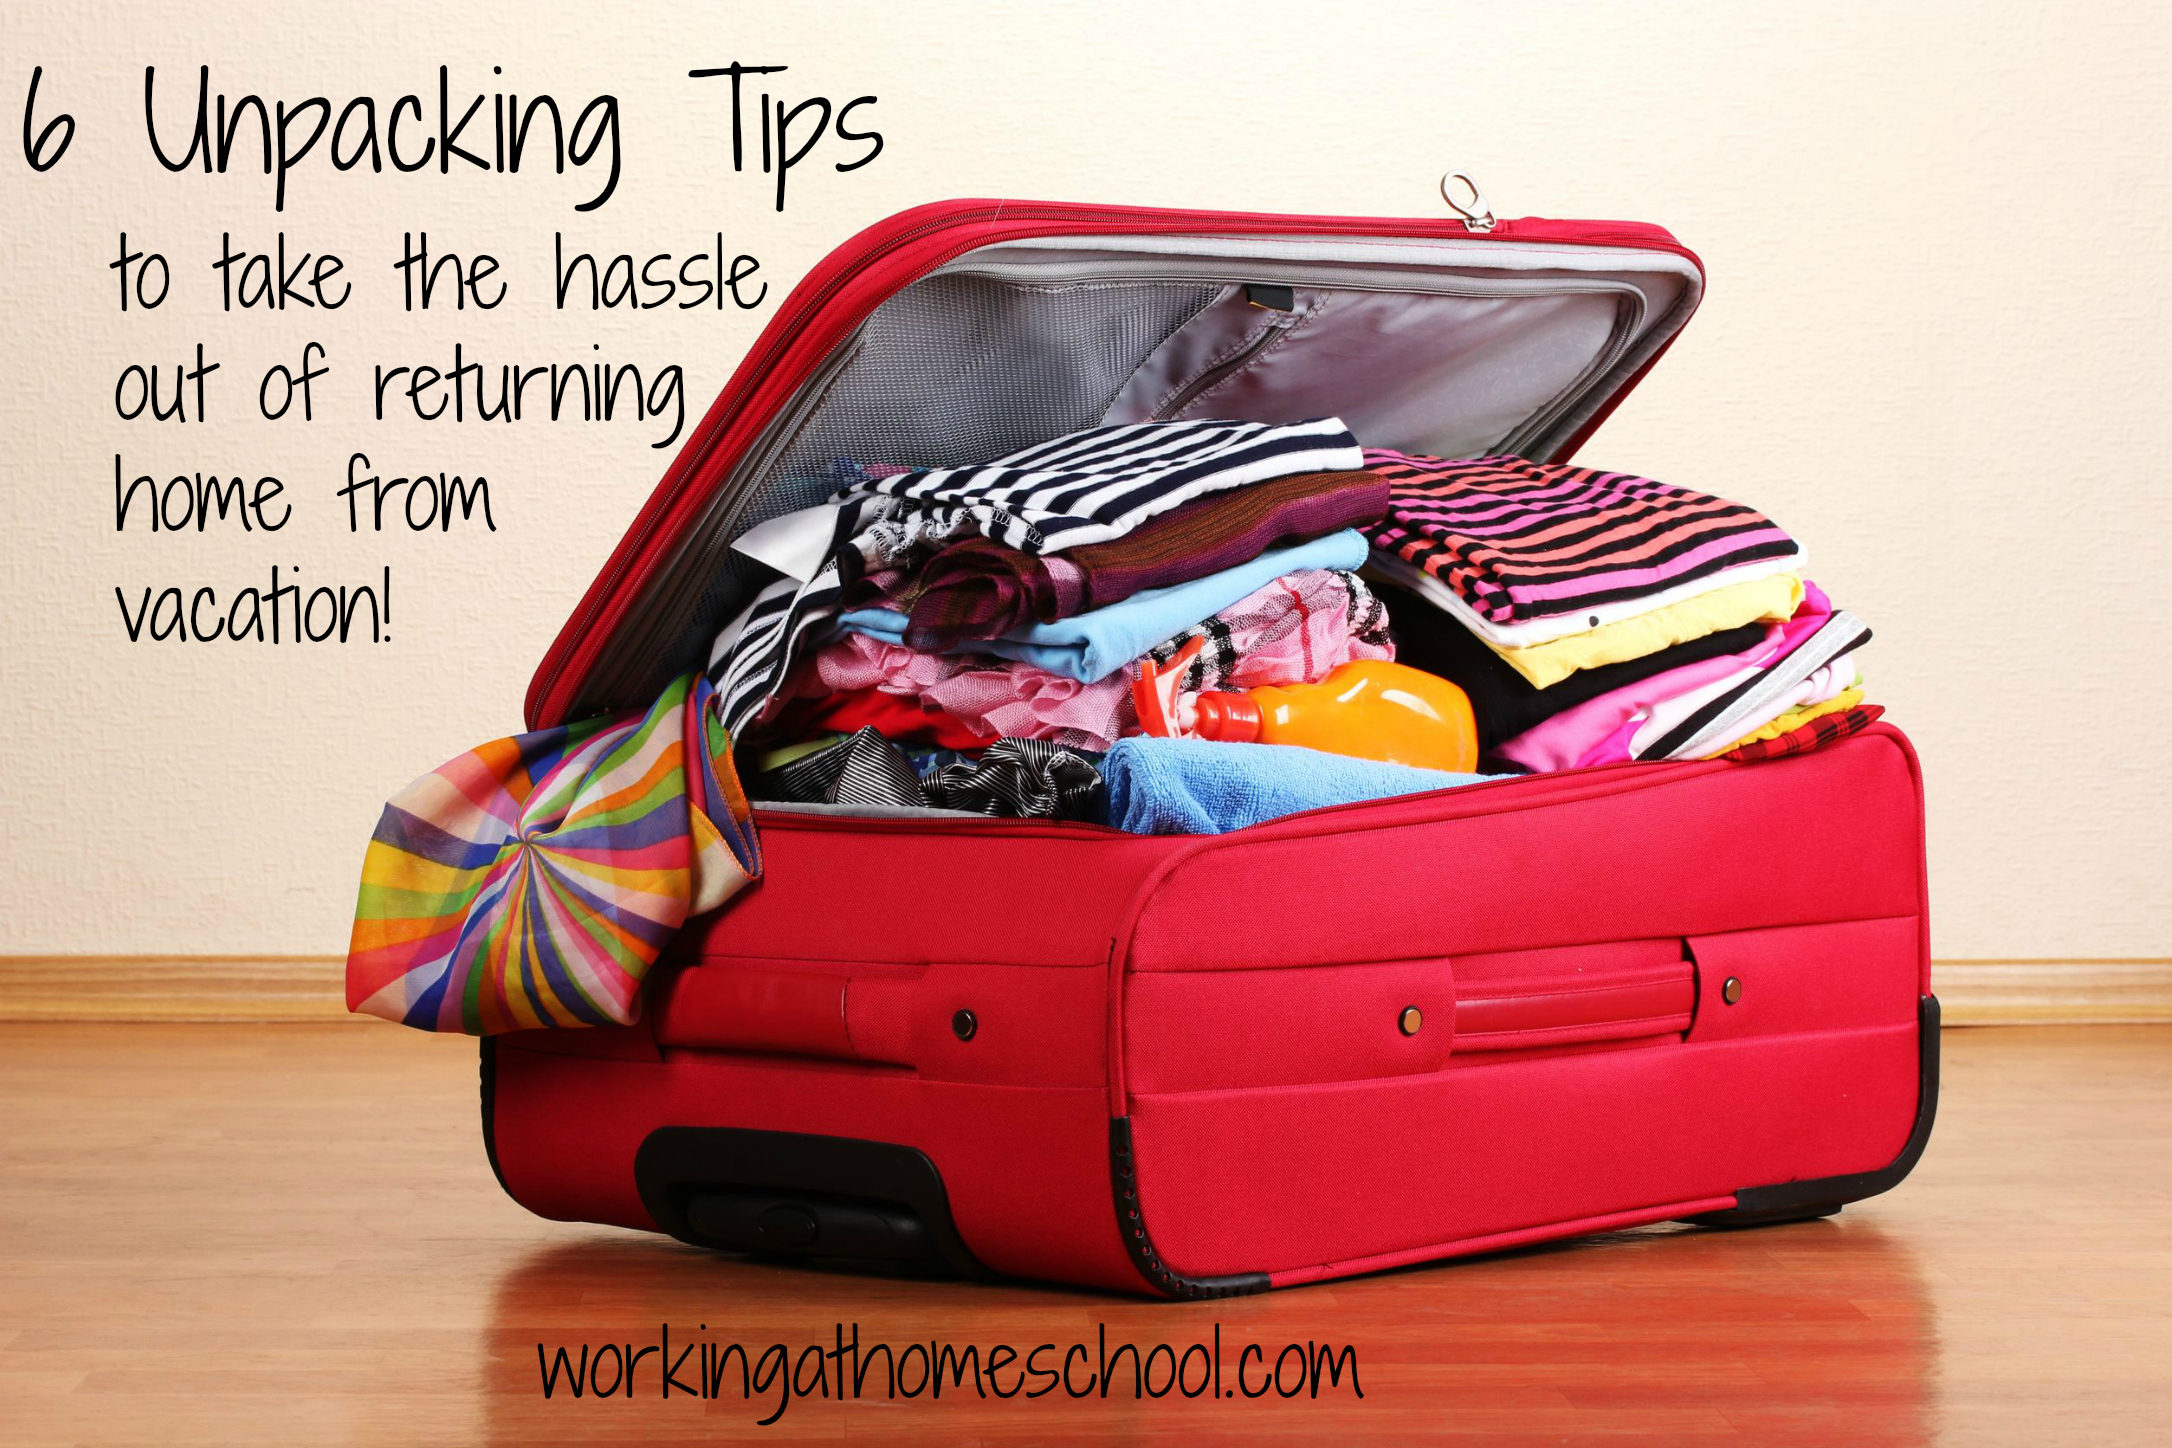 6 Tips for Unpacking Luggage